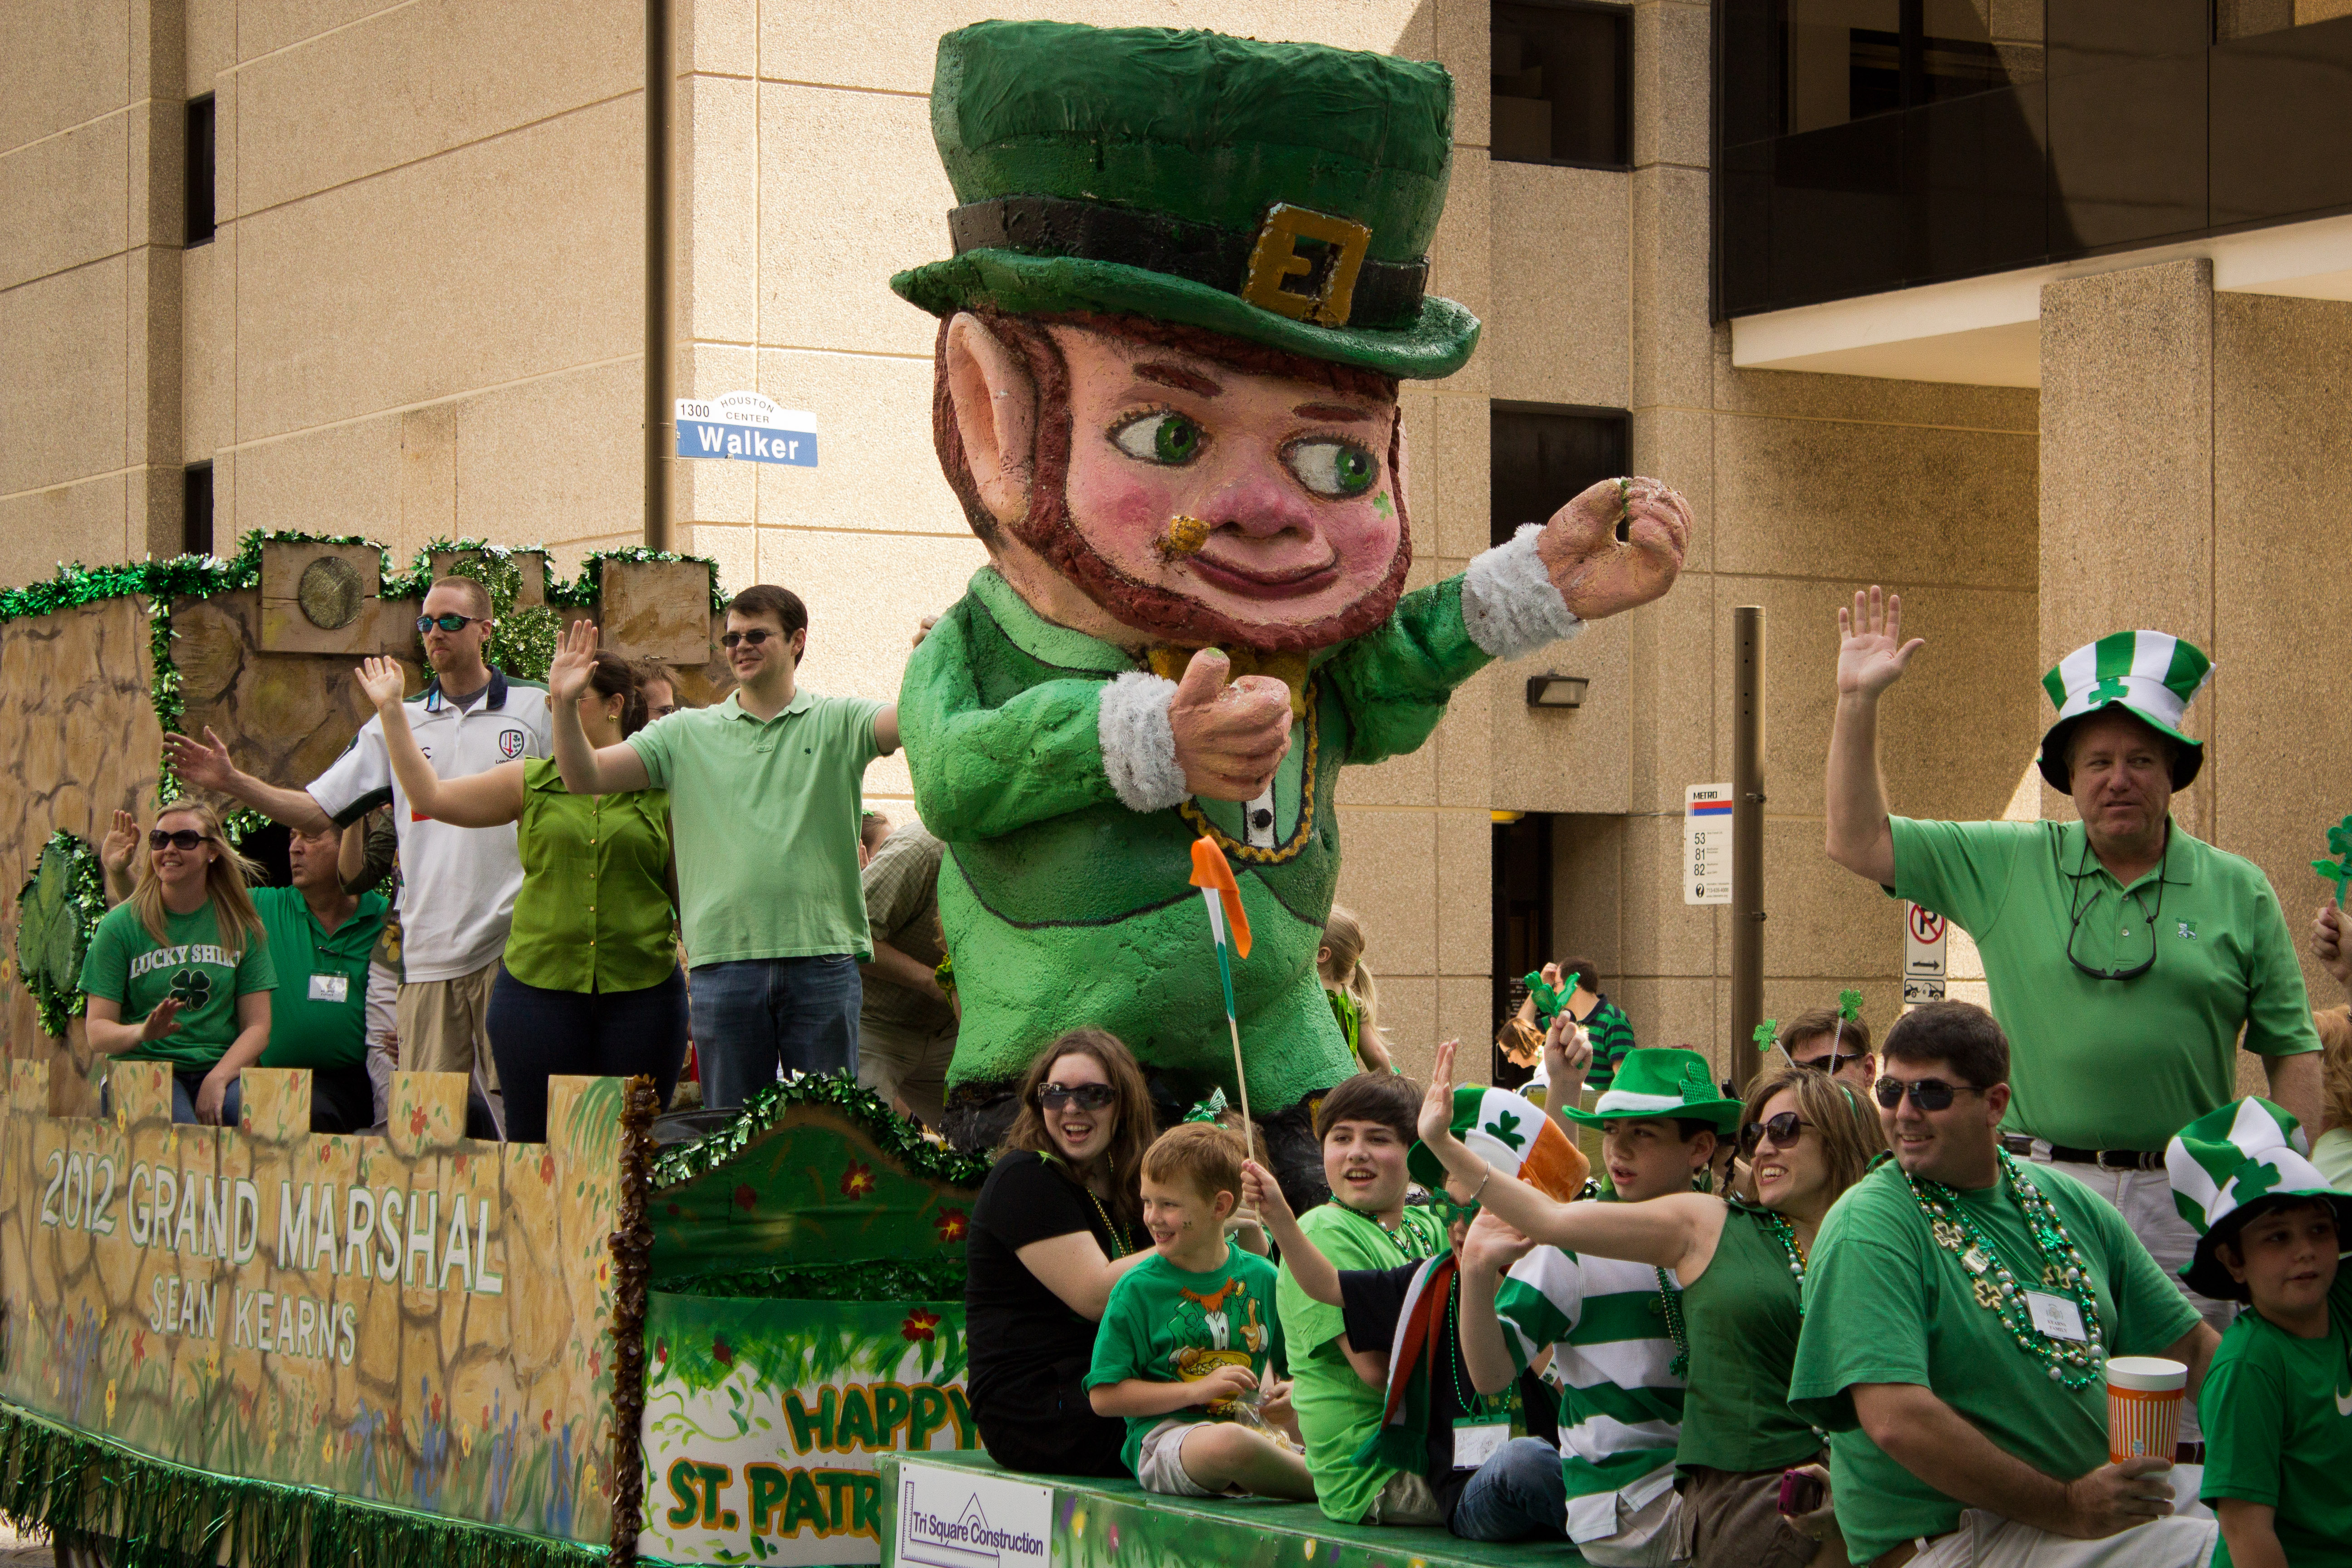 st patricks day parade downtown houston 2012 irish-4